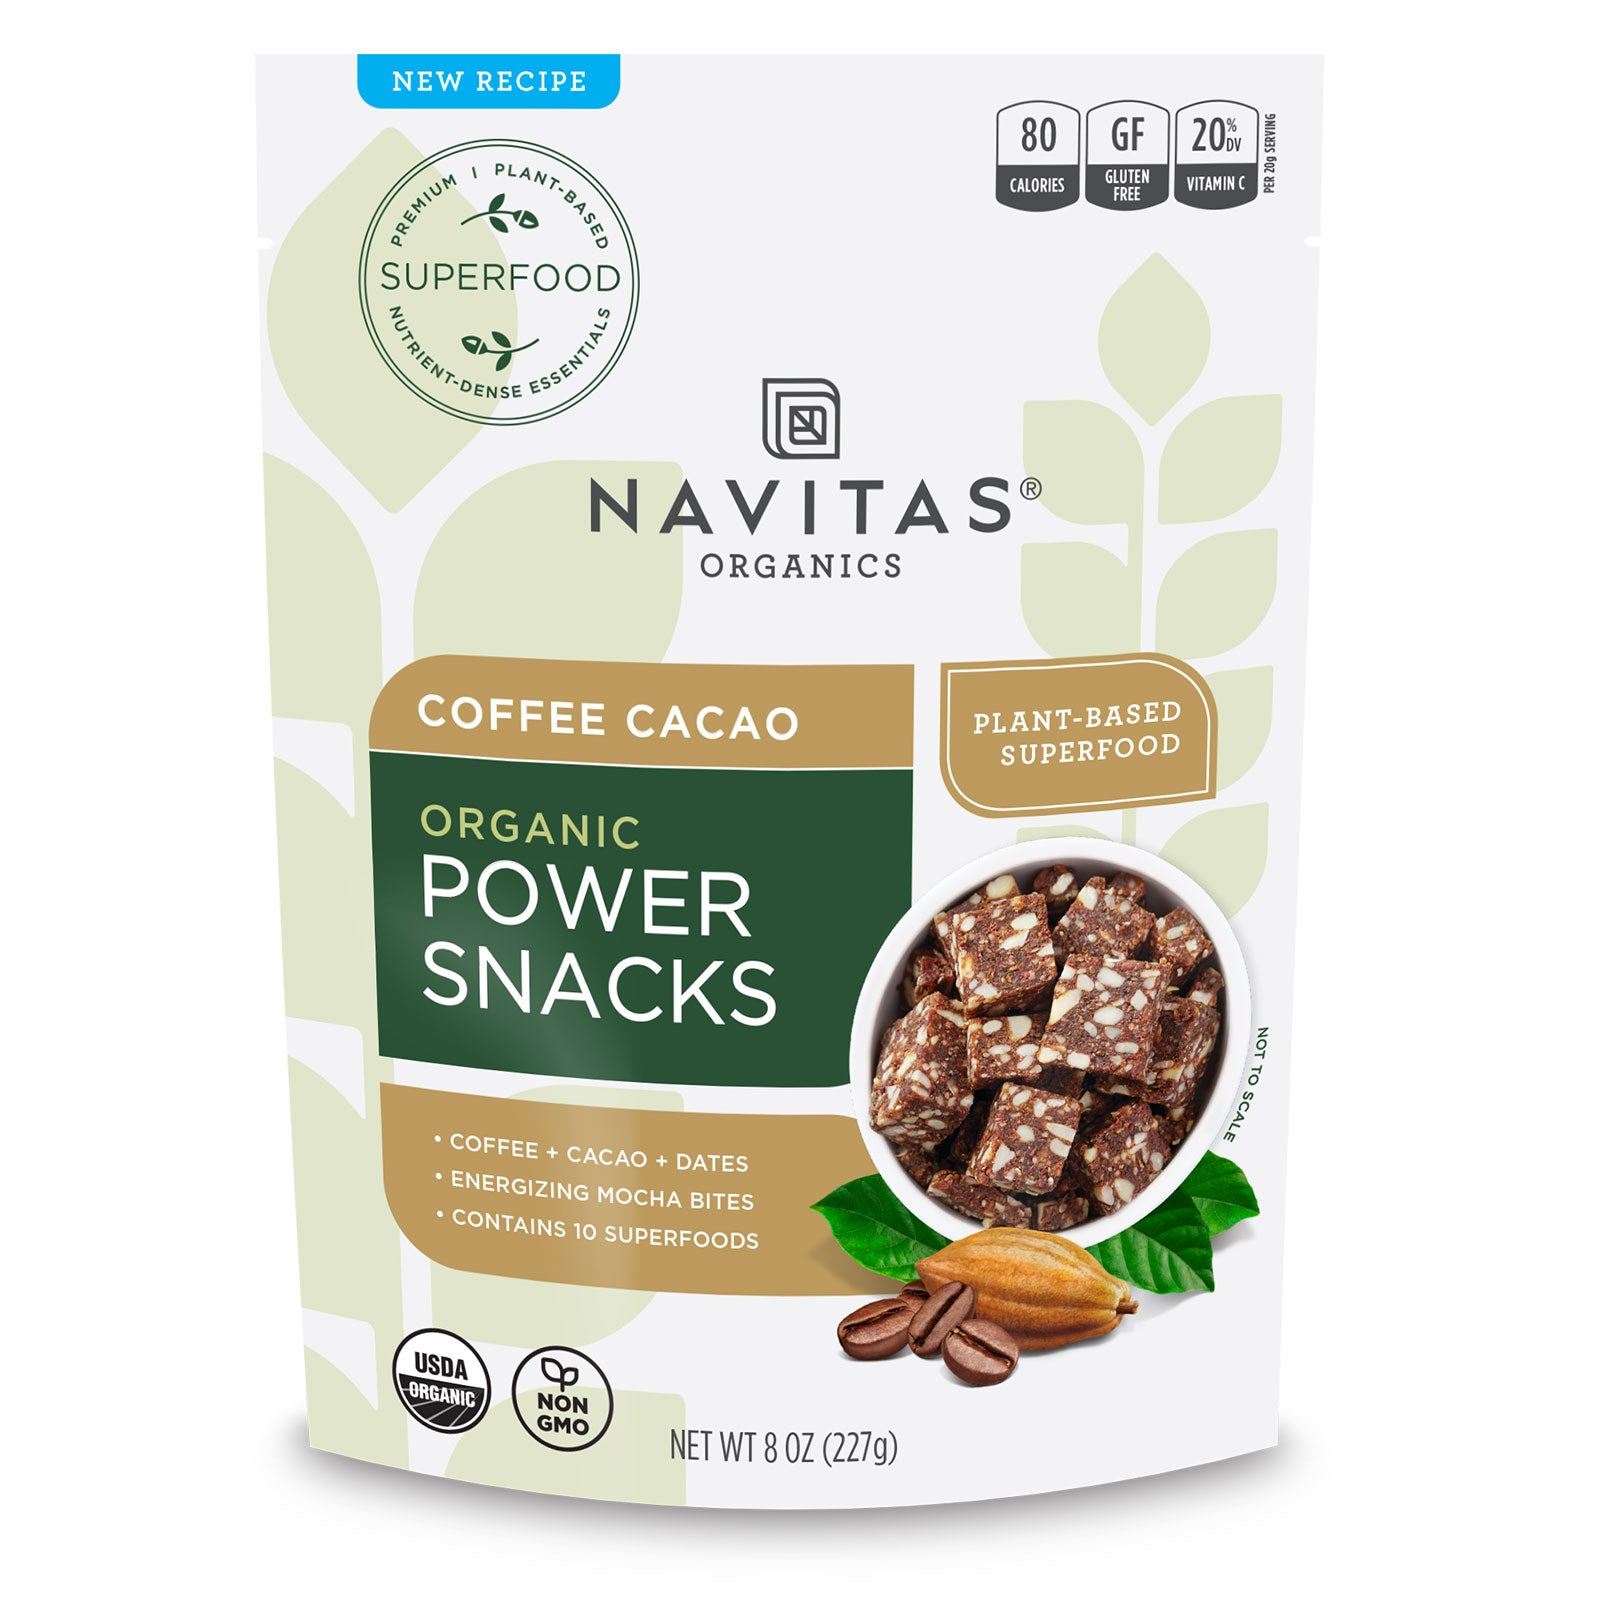 Navitas Organics Coffee Cacao Power Snacks package front